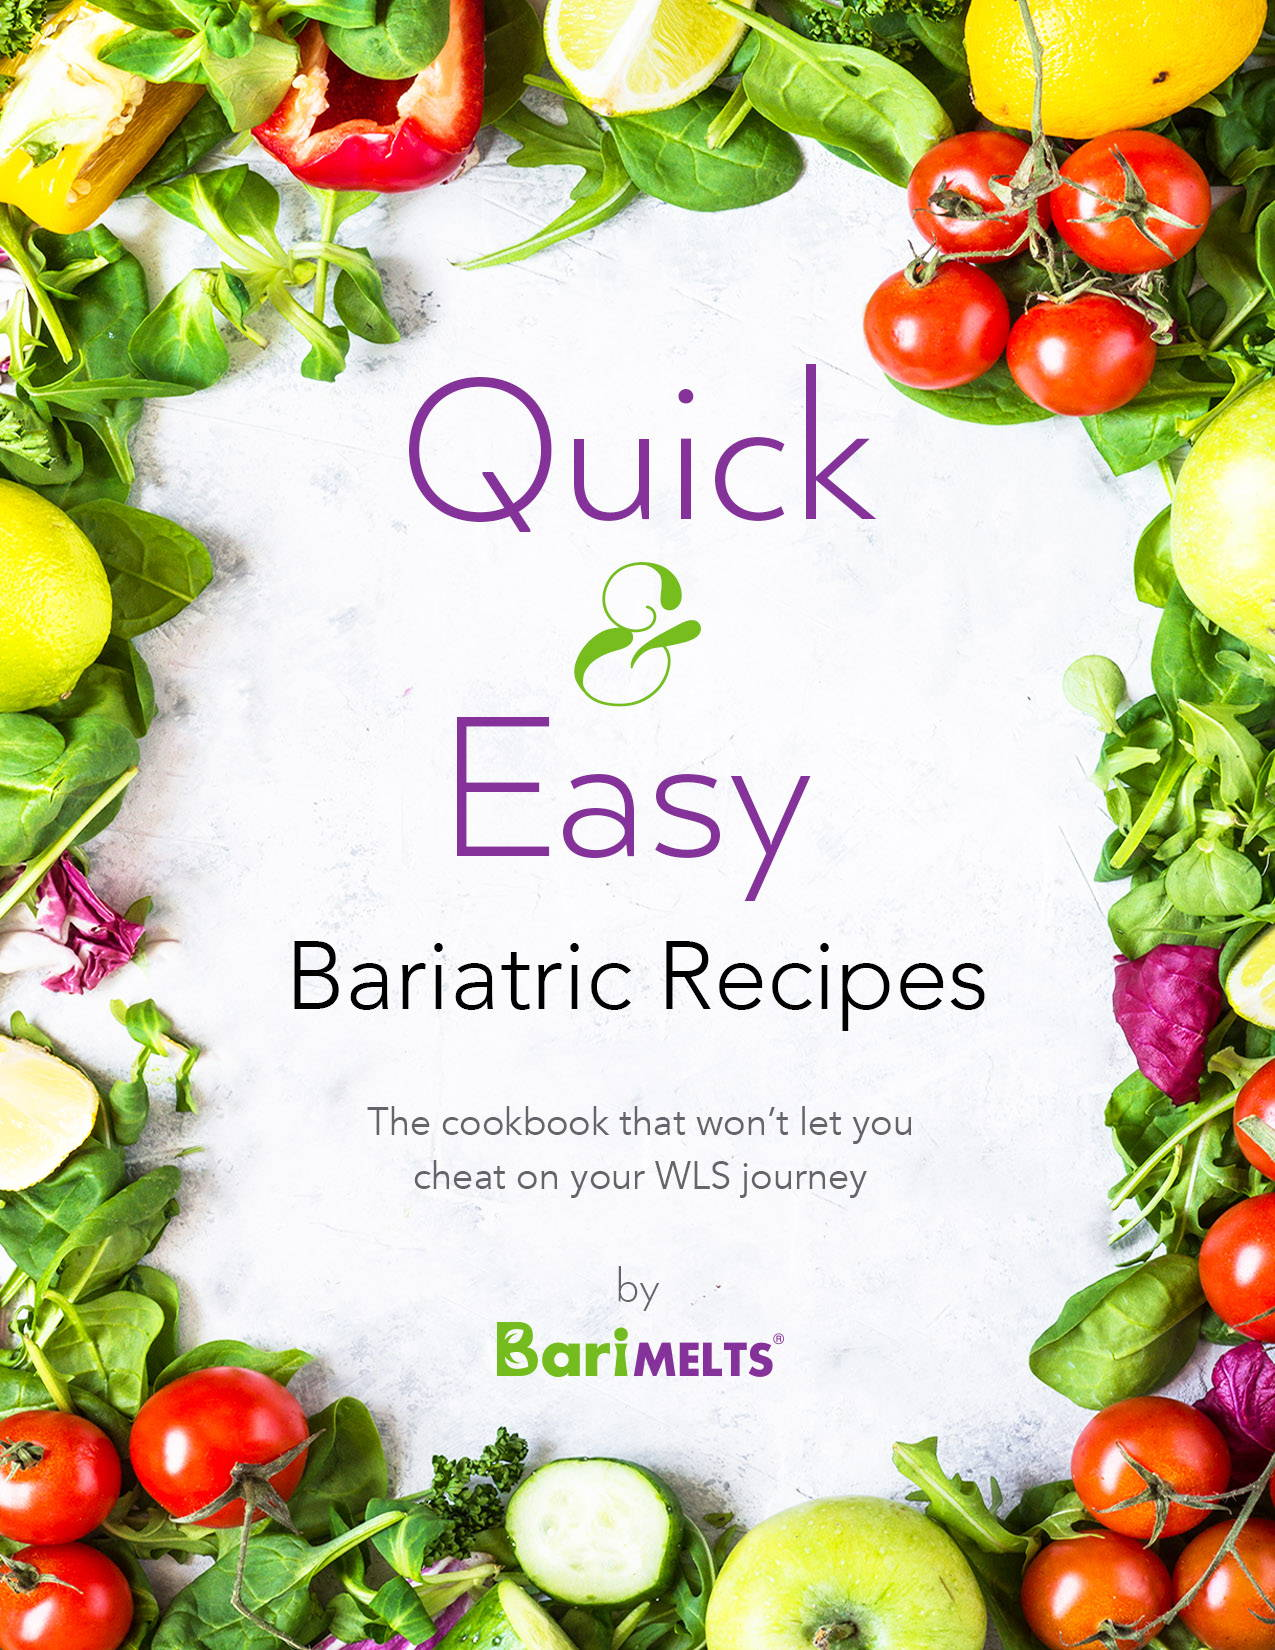 Quick easy bariatric recipes ebook front cover